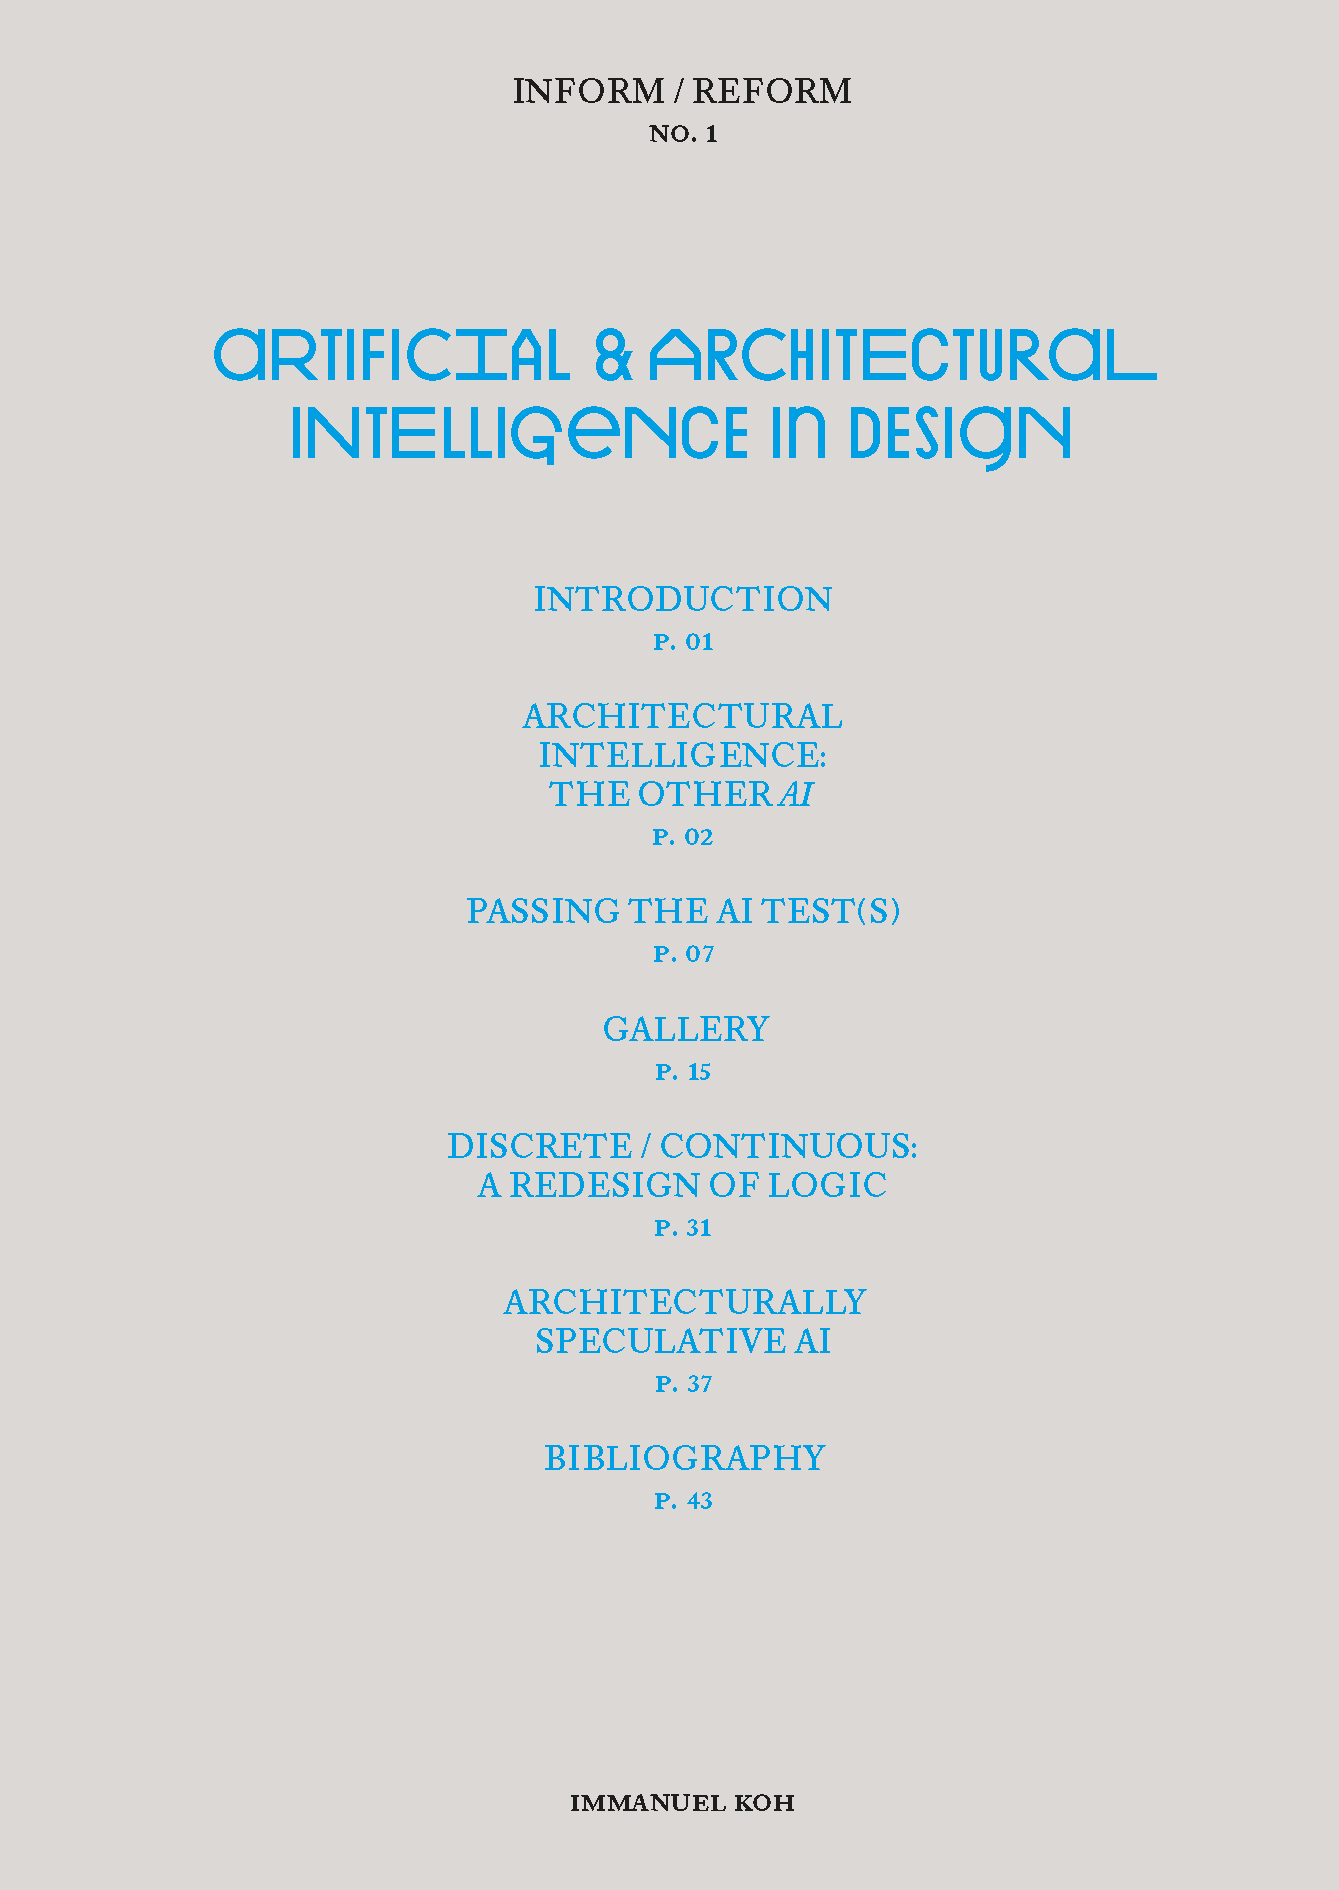 Inform/Reform Series; Issue No 1, Artificial & Architectural Intelligence in Design